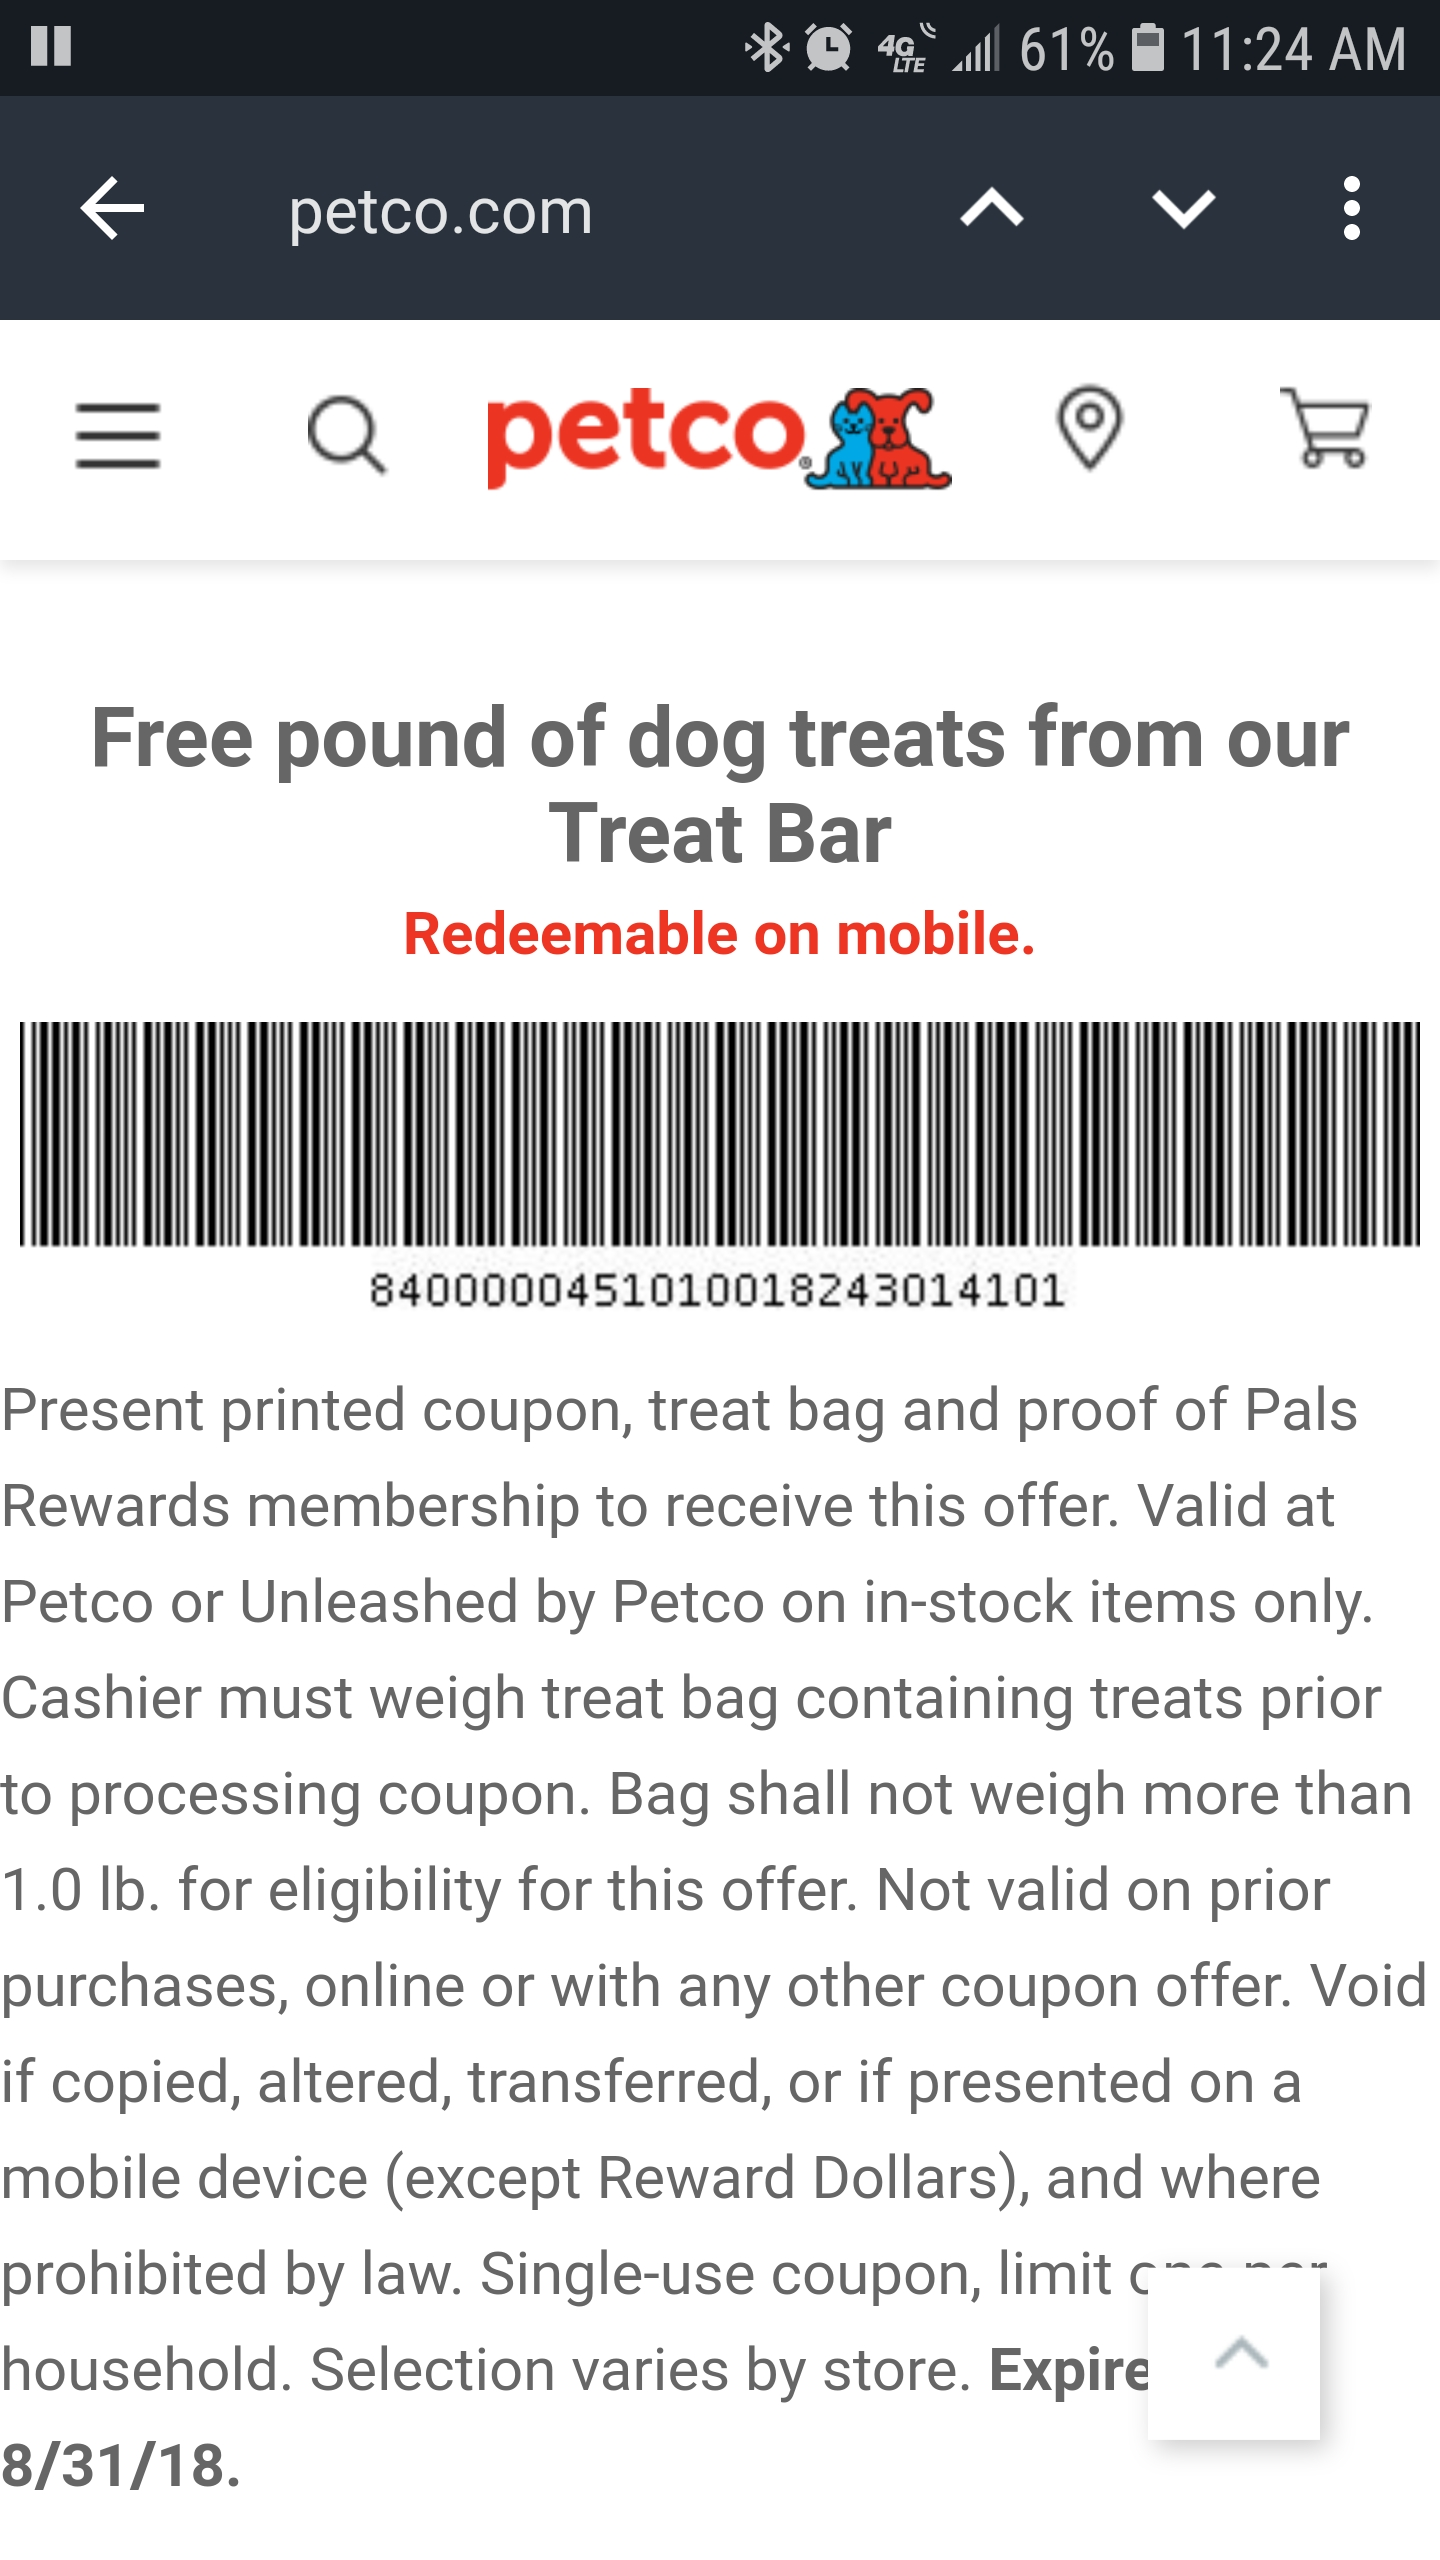 Petco In-Store Coupon : 1-LB of Free Dog Treats